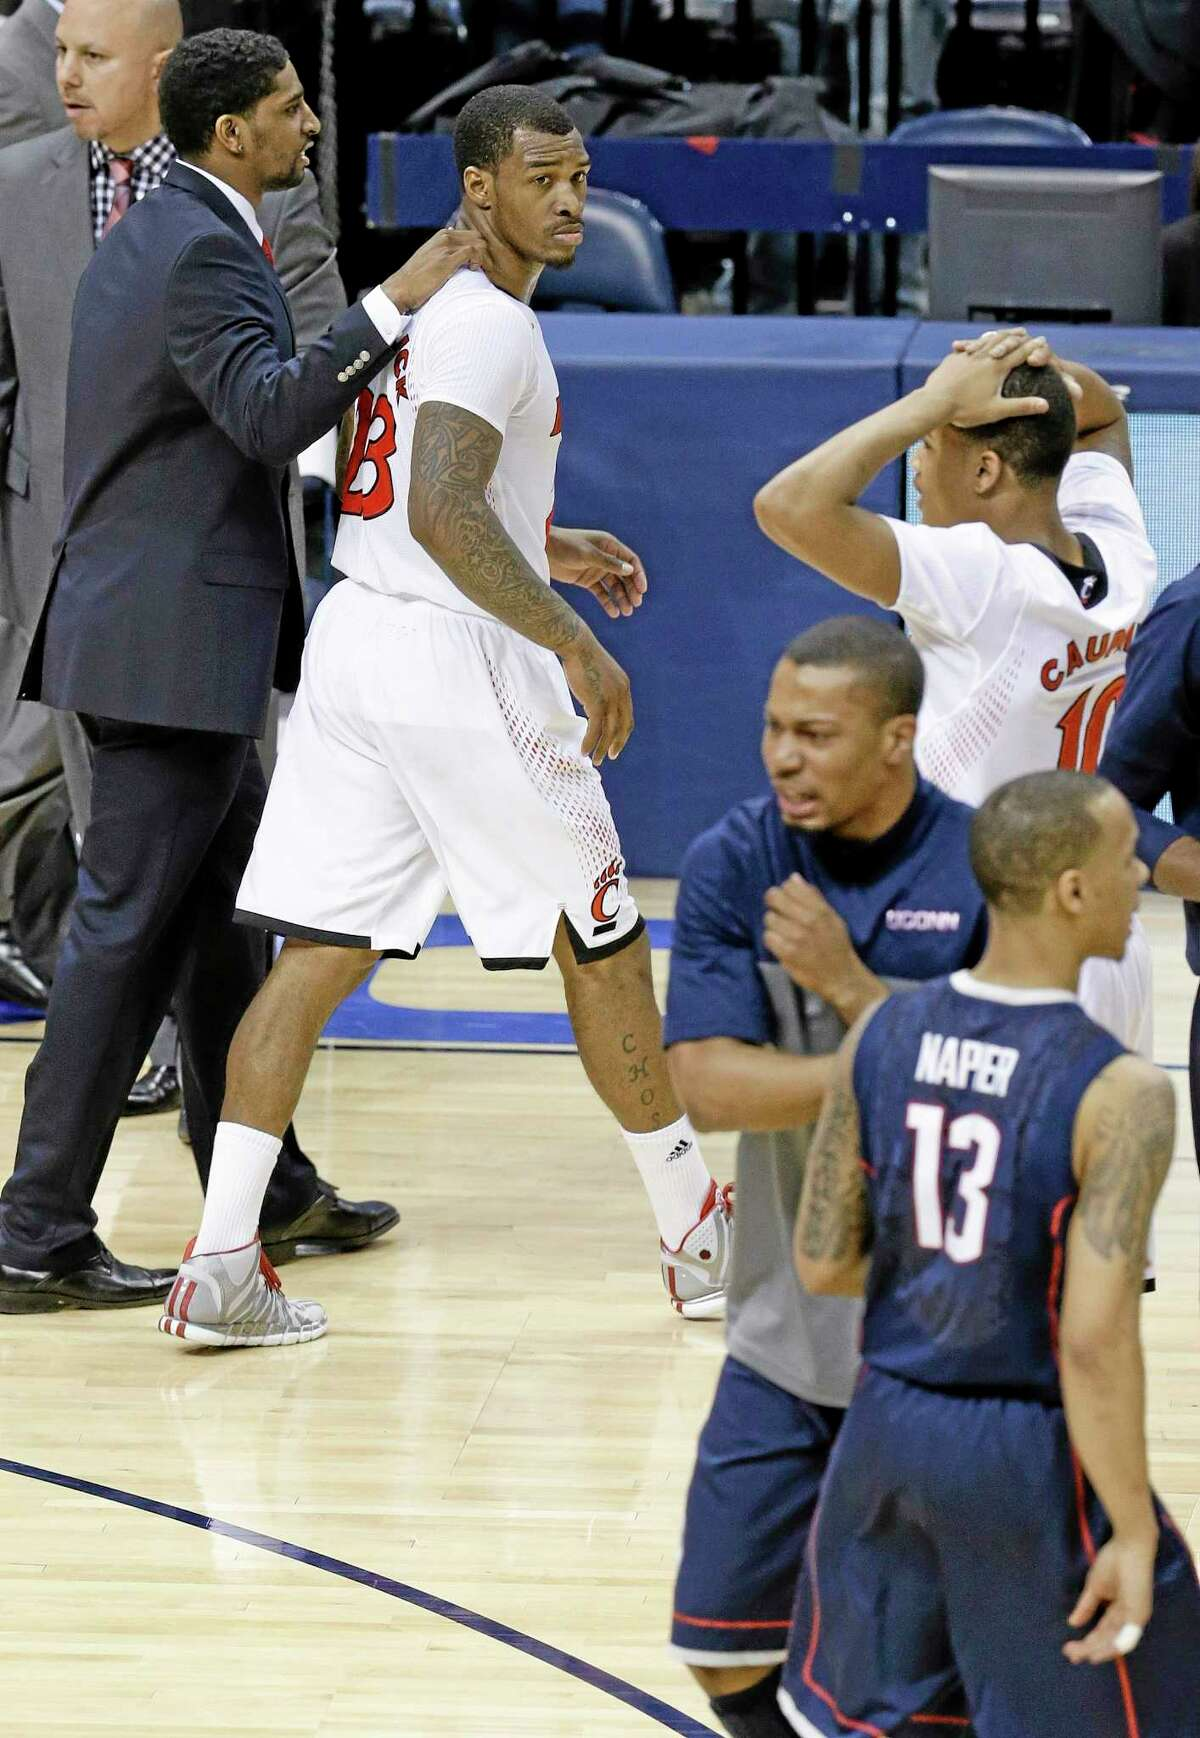 Cincinnati guard Sean Kilpatrick, top left, leaves the court as UConn guard Shabazz Napier celebrates with teammates after the Huskies' 58-56 win on Friday night in the semifinals of the American Athletic Conference tournament in Memphis, Tenn. Kilpatrick missed a layup in the final seconds.